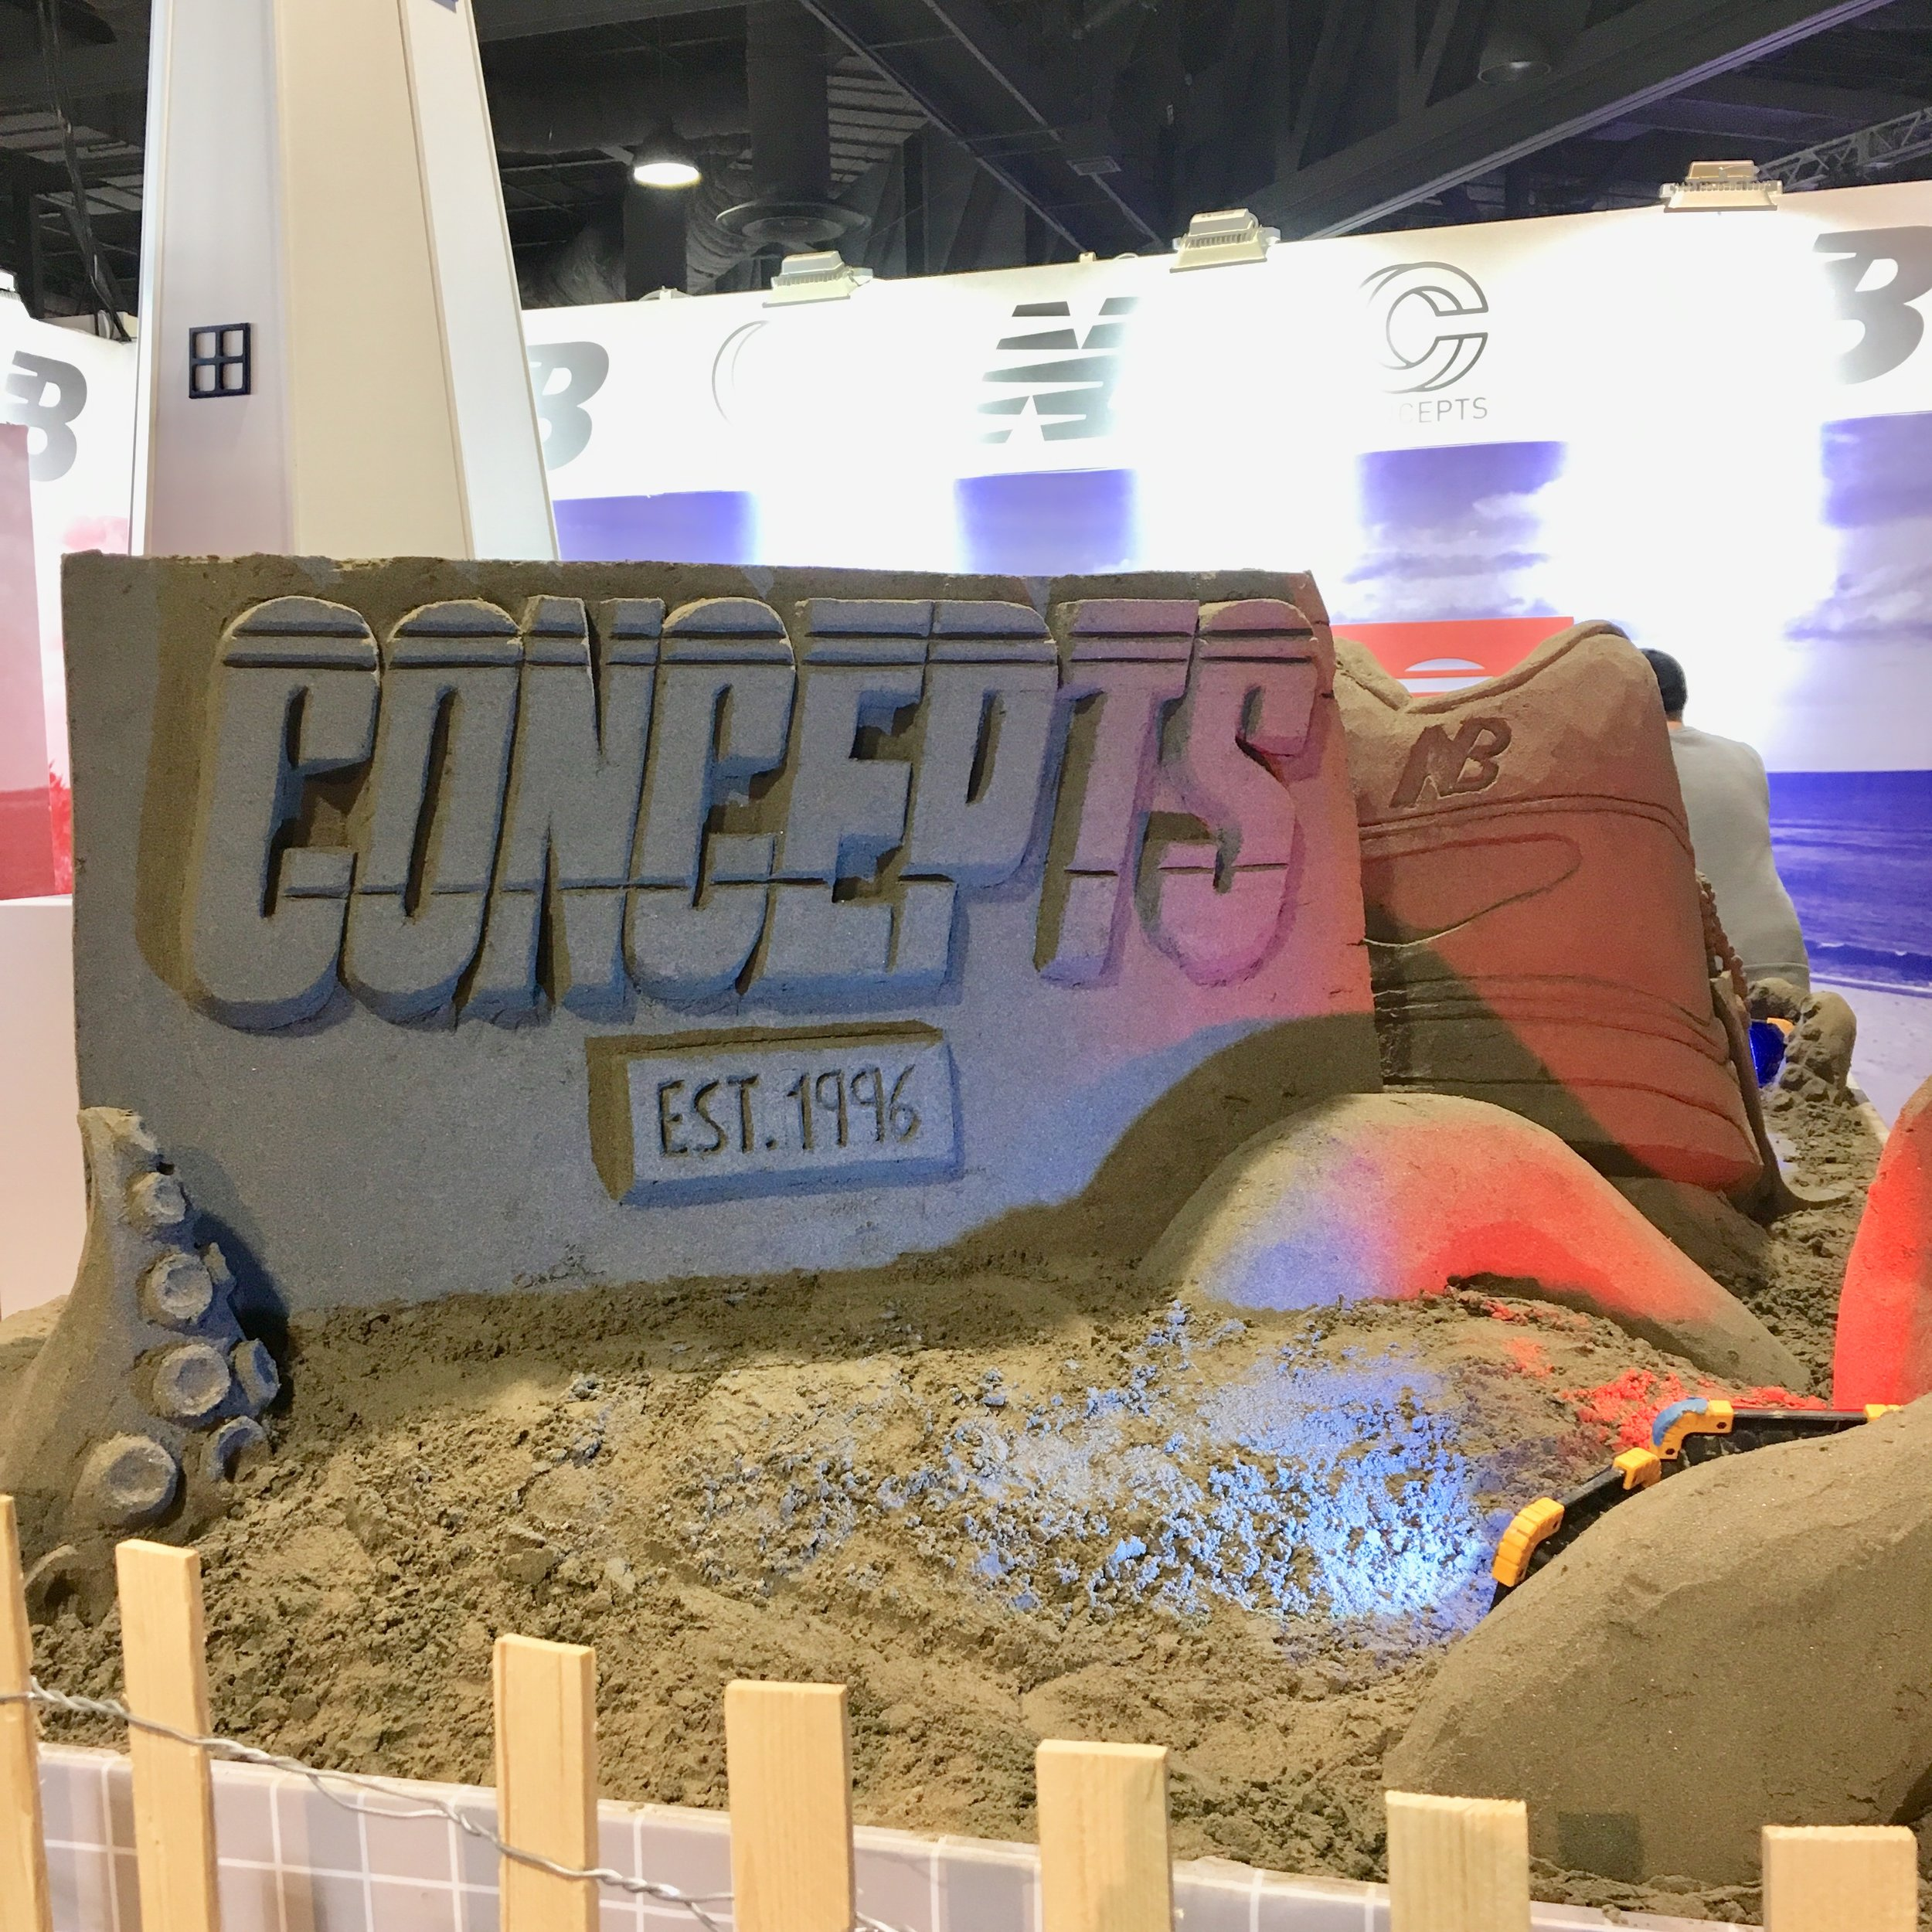 Concepts sandbox.  Their booth closed early because they sold out of product.